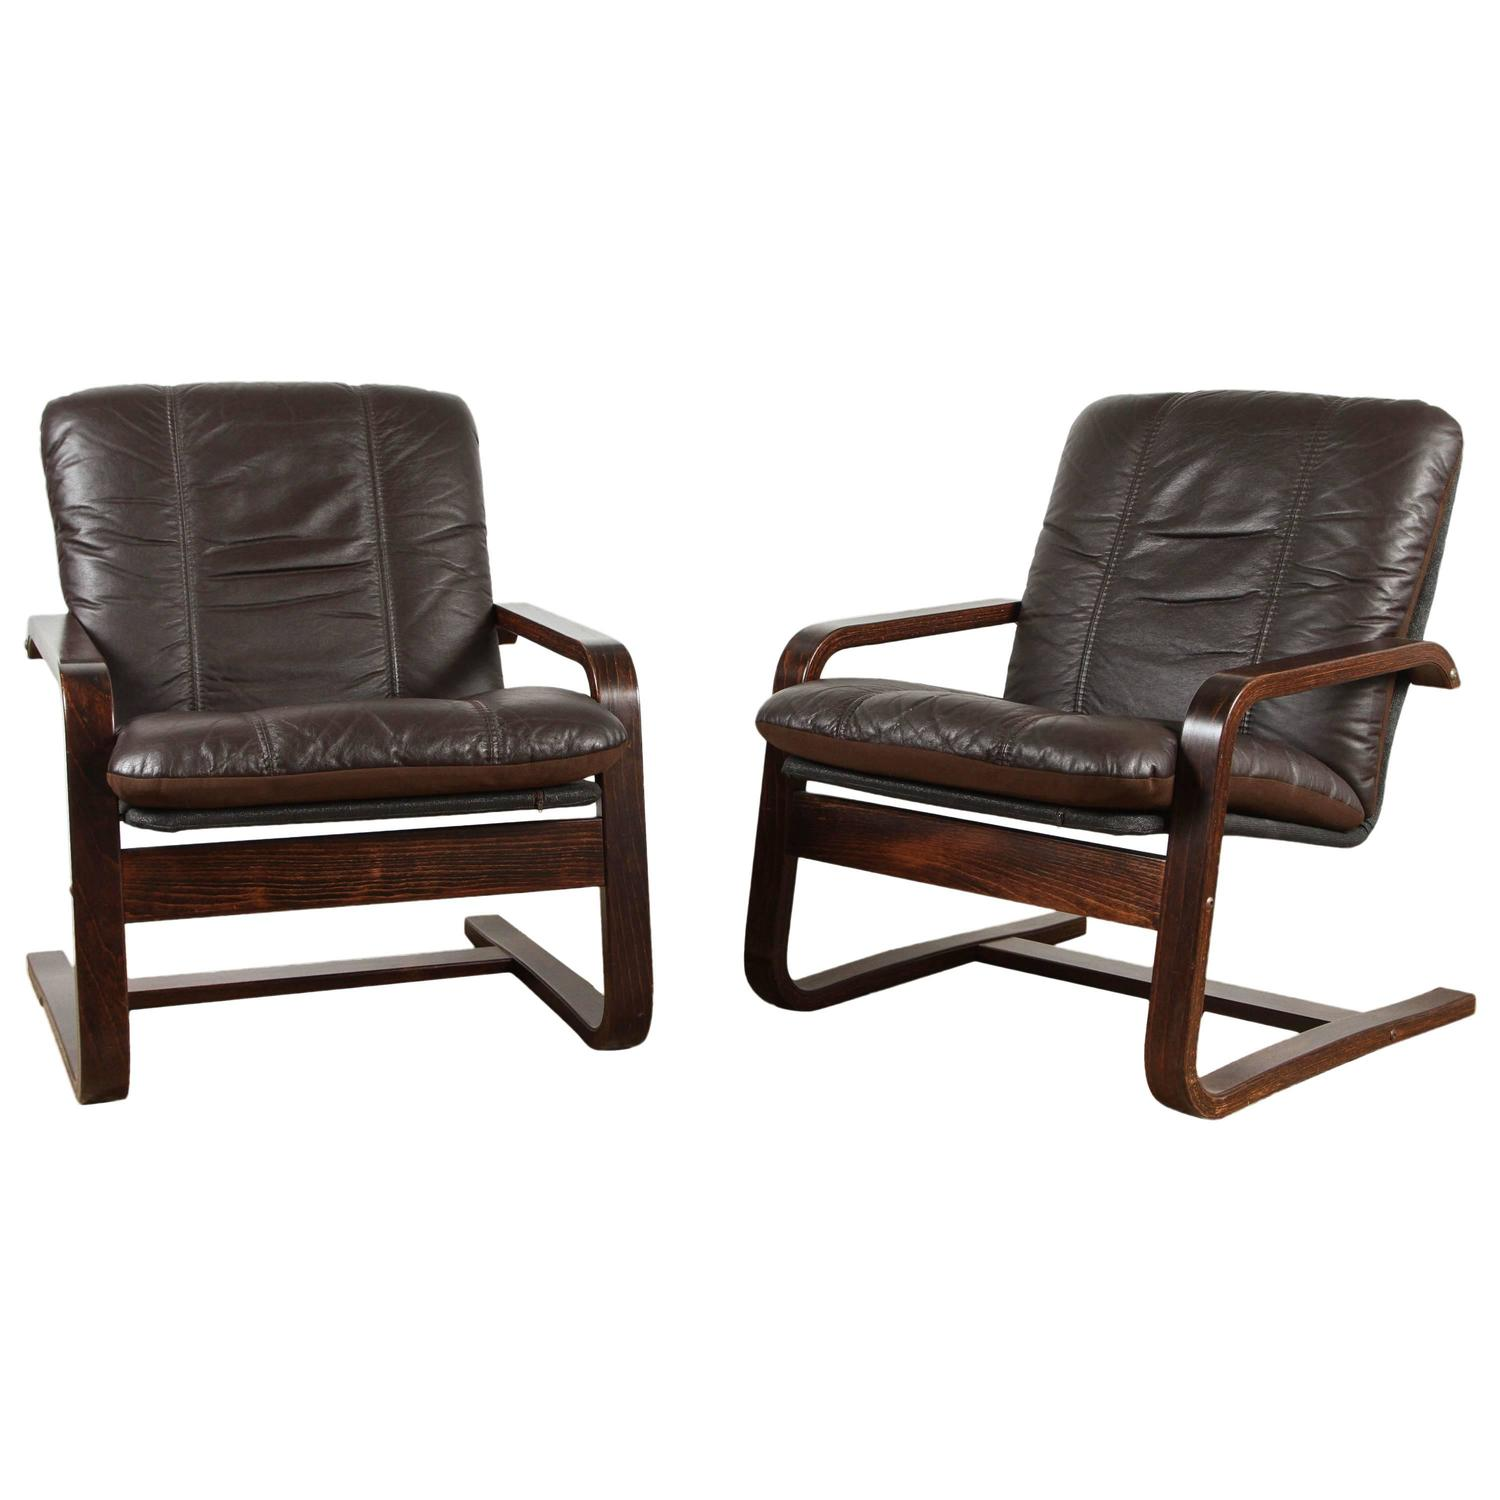 Mid Century Lounge Chairs at 1stdibs